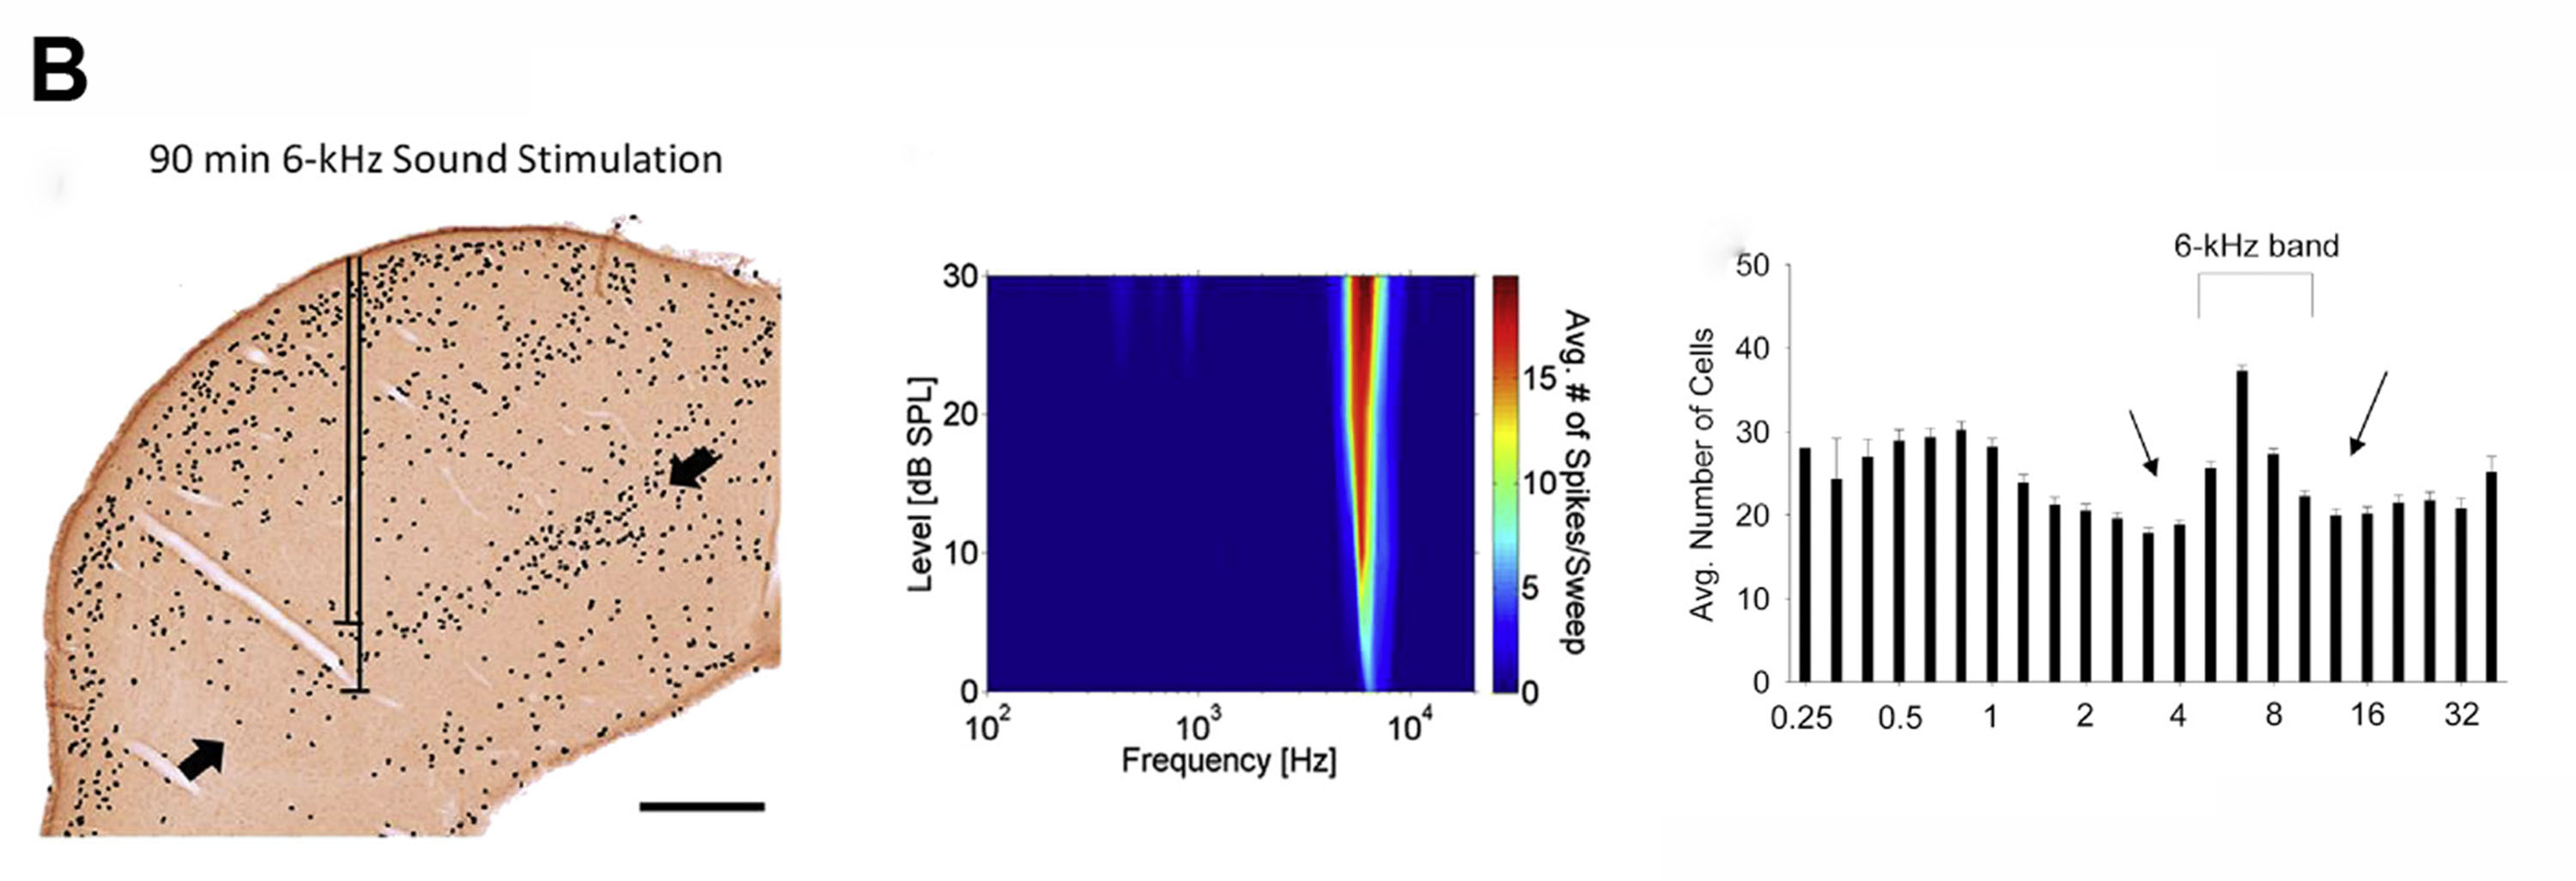 Image of c-fos immuno-labelling, tuning curve and graphed number of active cells at 6kHz band stimulation